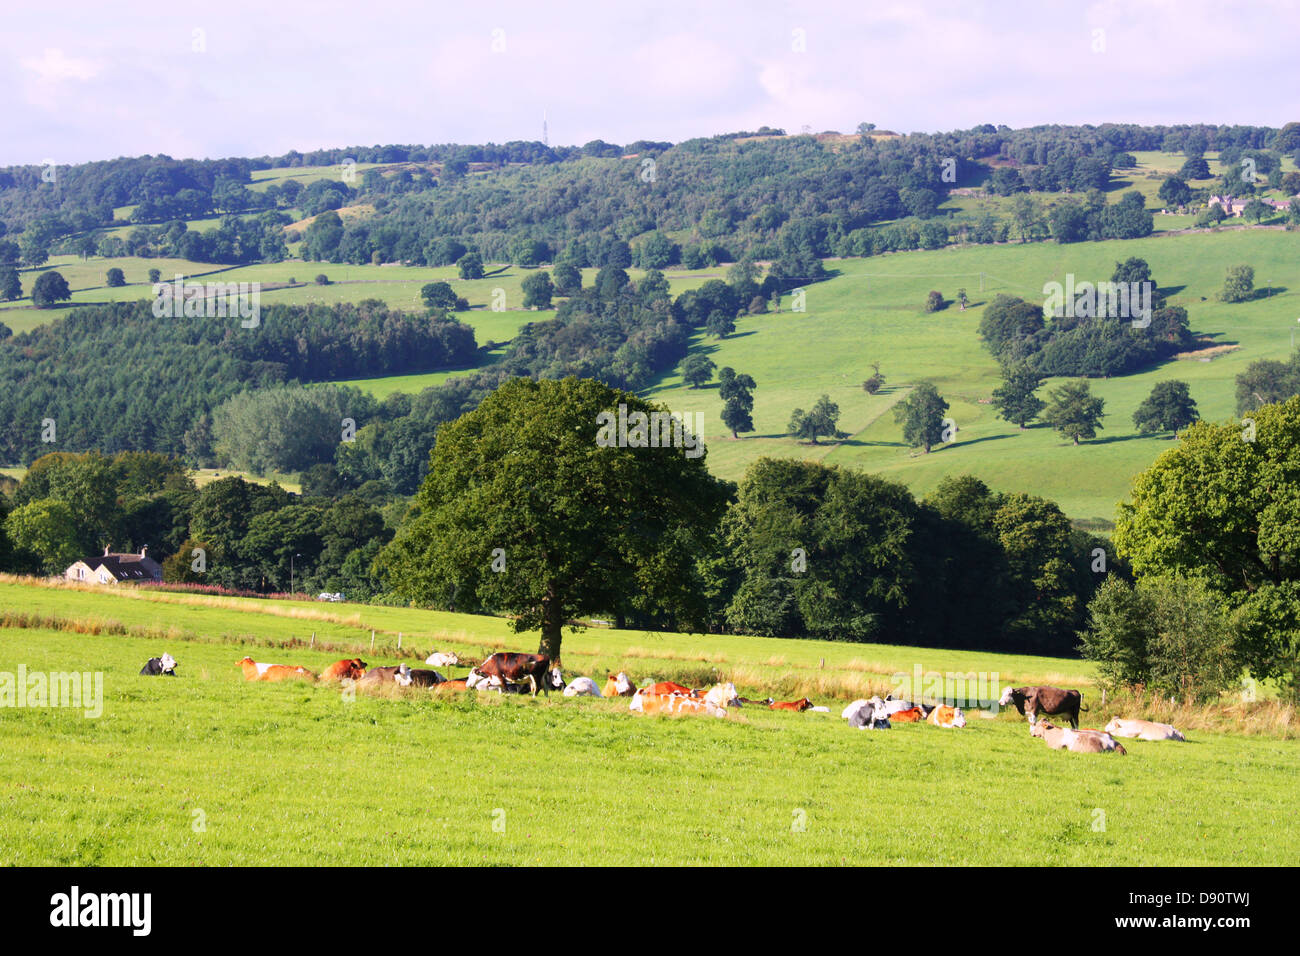 Cows sleeping and relaxing in green field Stock Photo